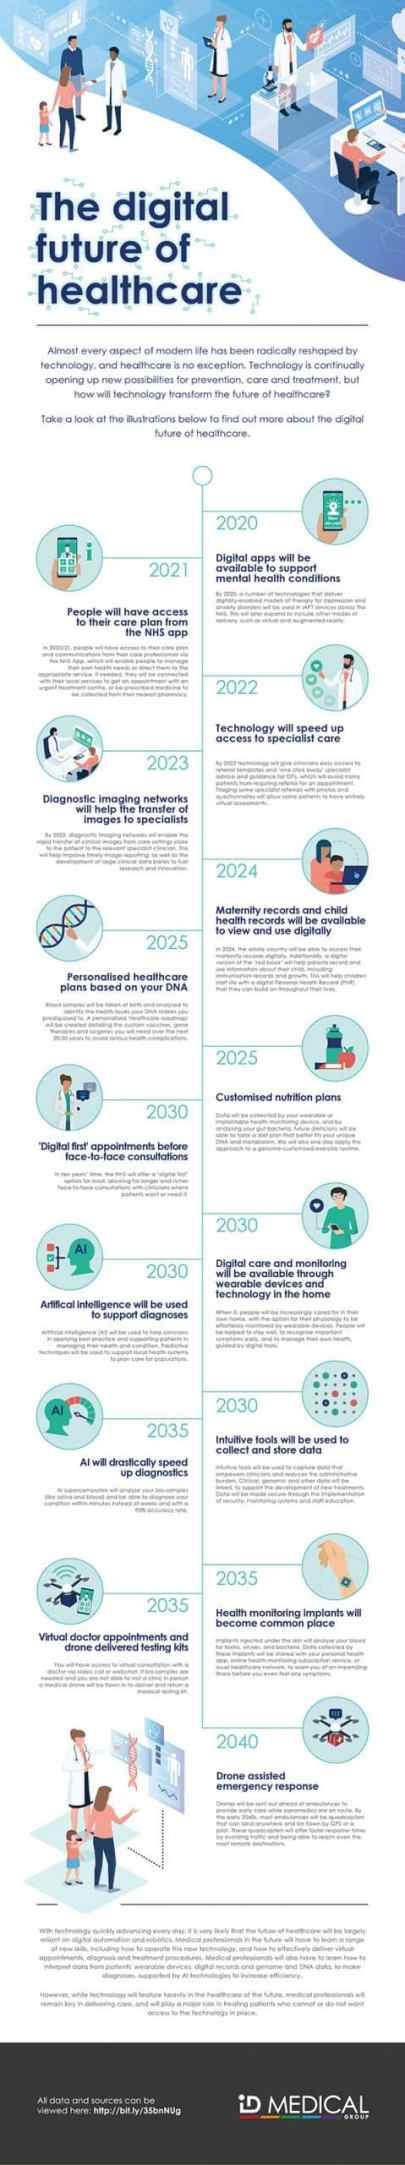 ID Medical the digital future of healthcare infographic